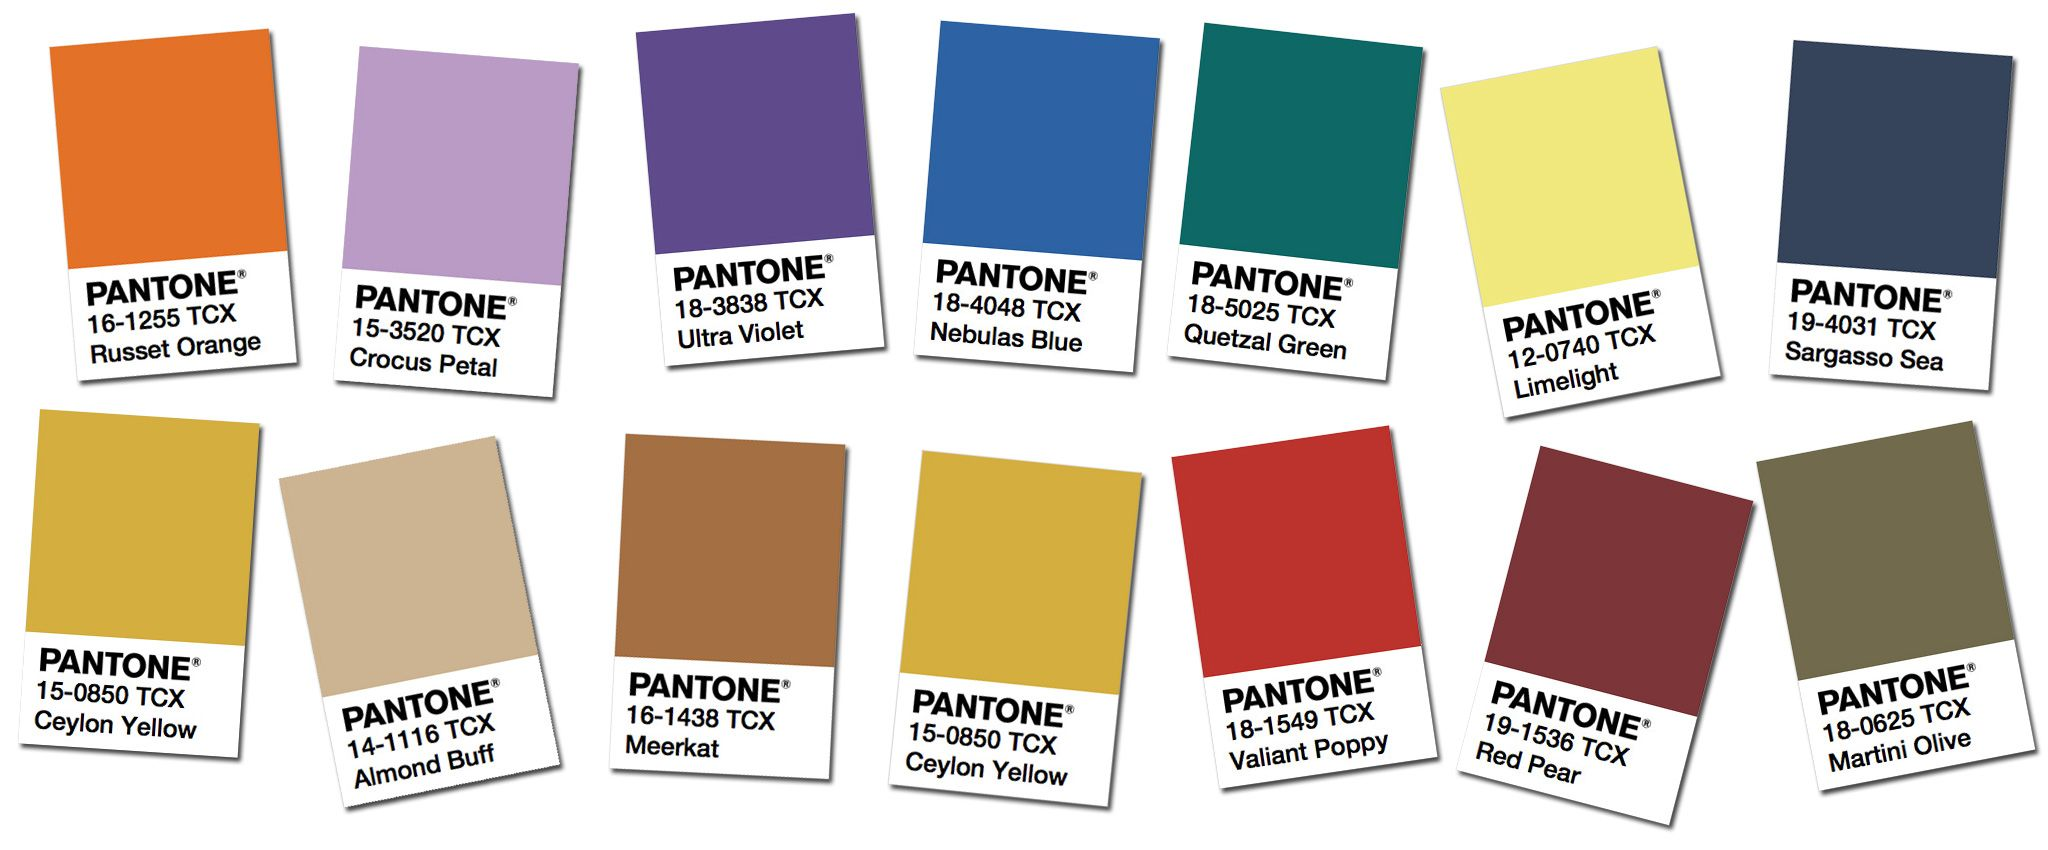 pantone fashion color trend report ny week fall winter 2018 colors trends find in illustrator reference library